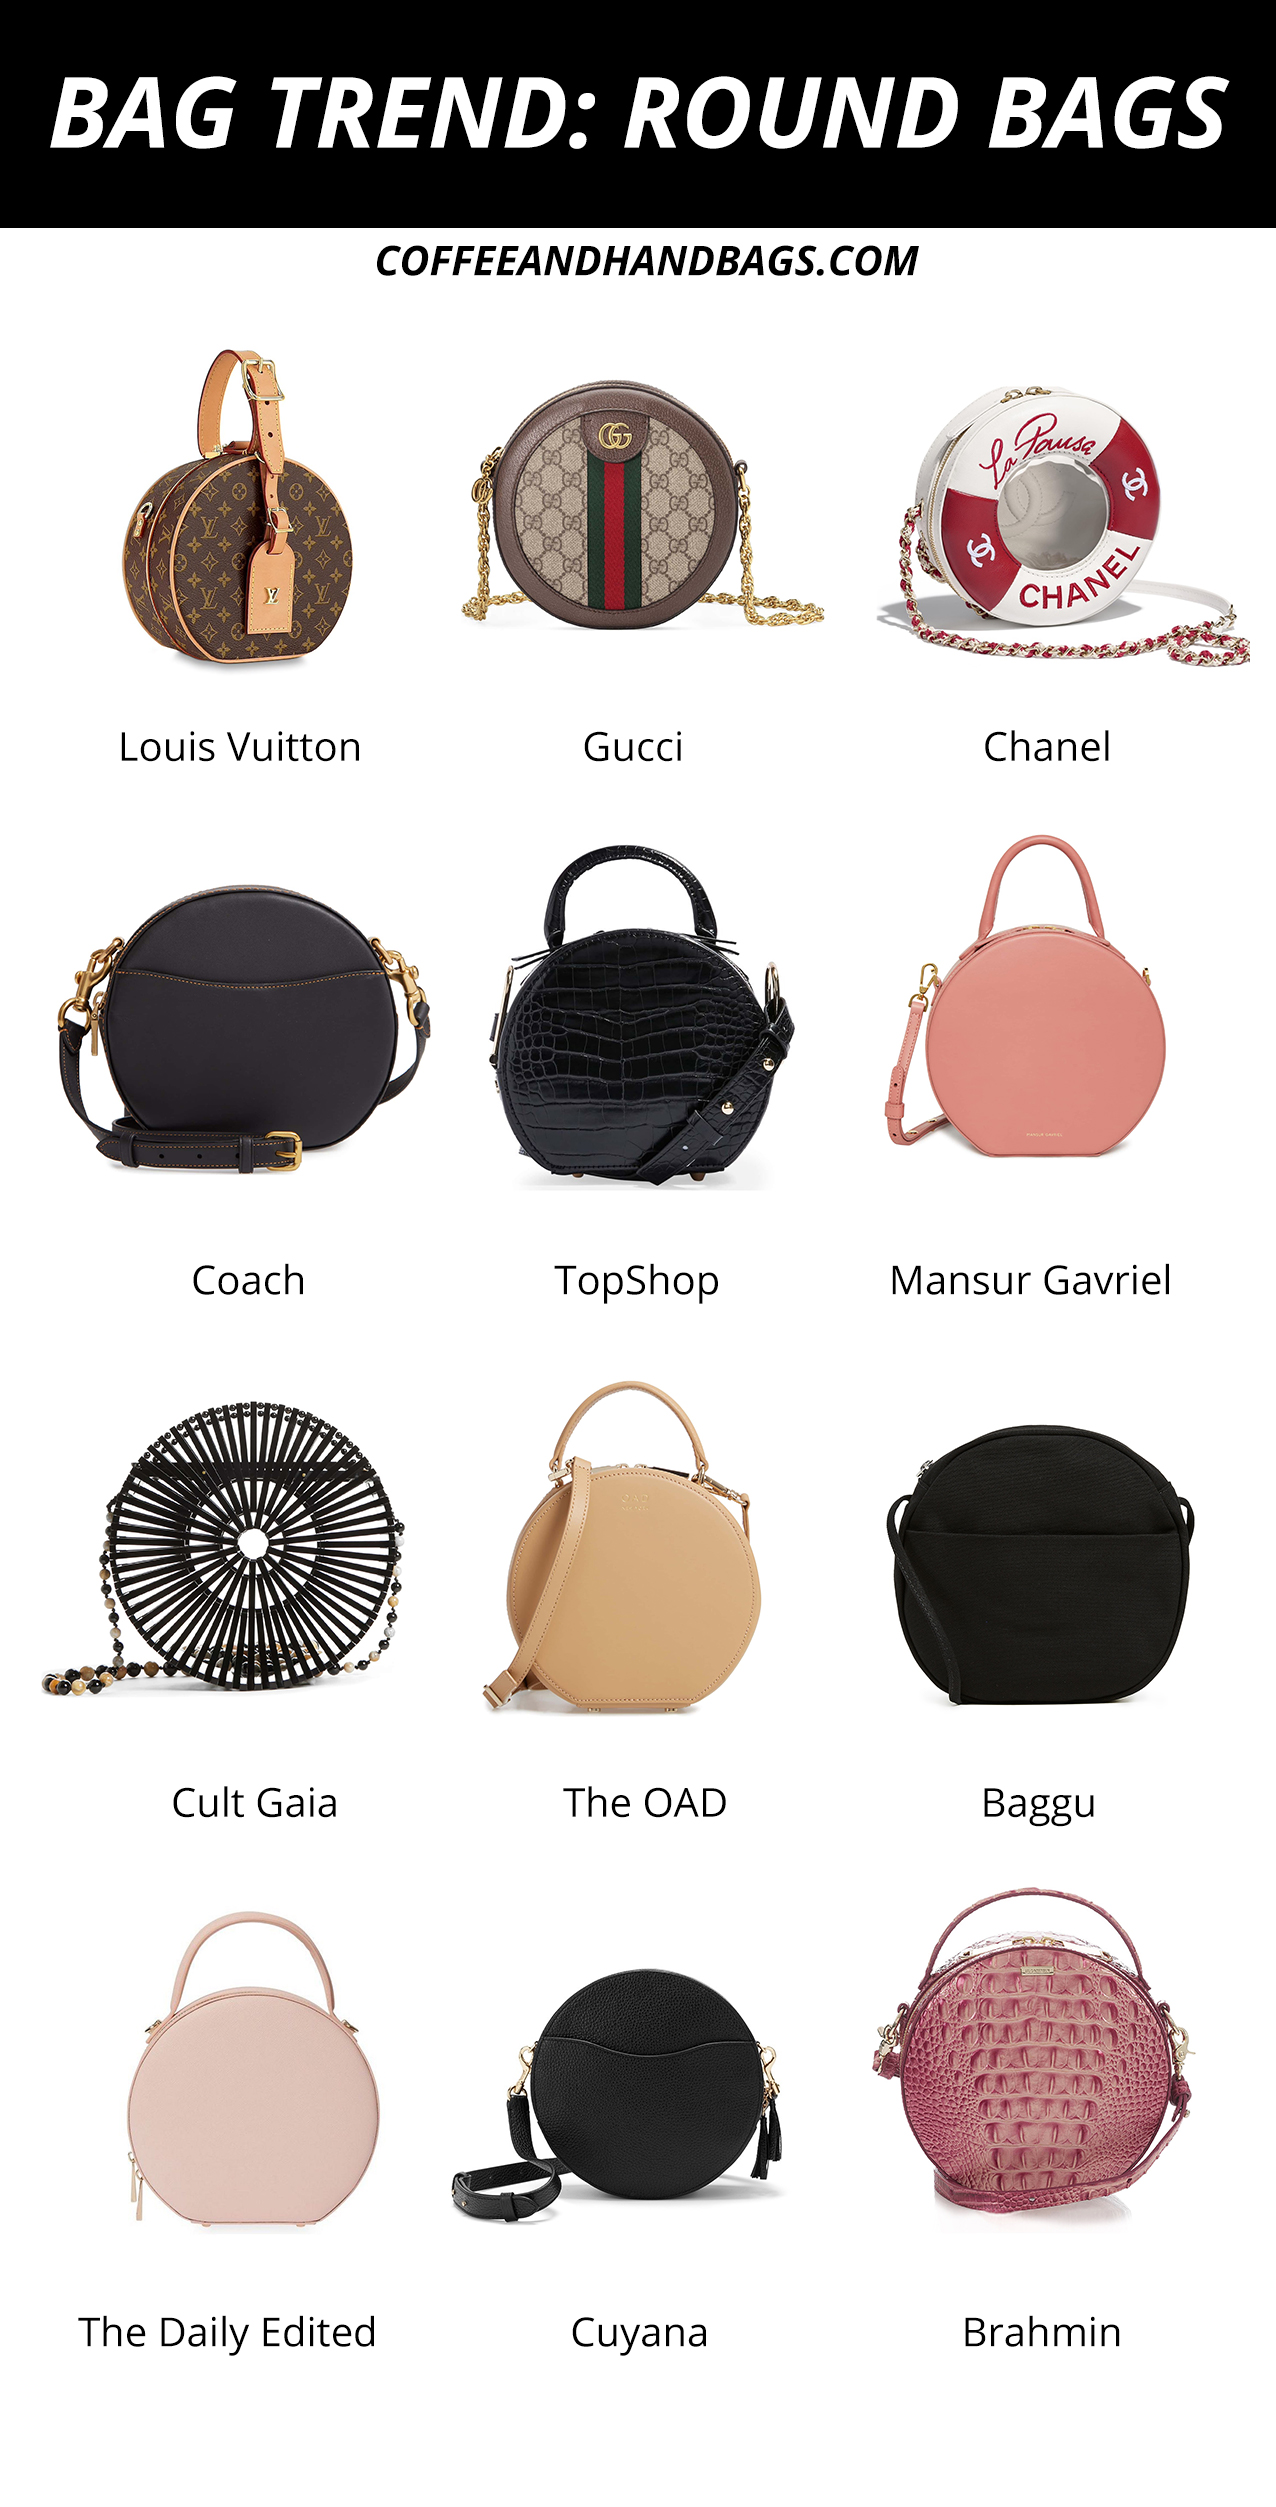 Bag Trend Round-Up: The Best Circle Bags | CoffeeAndHandbags.com